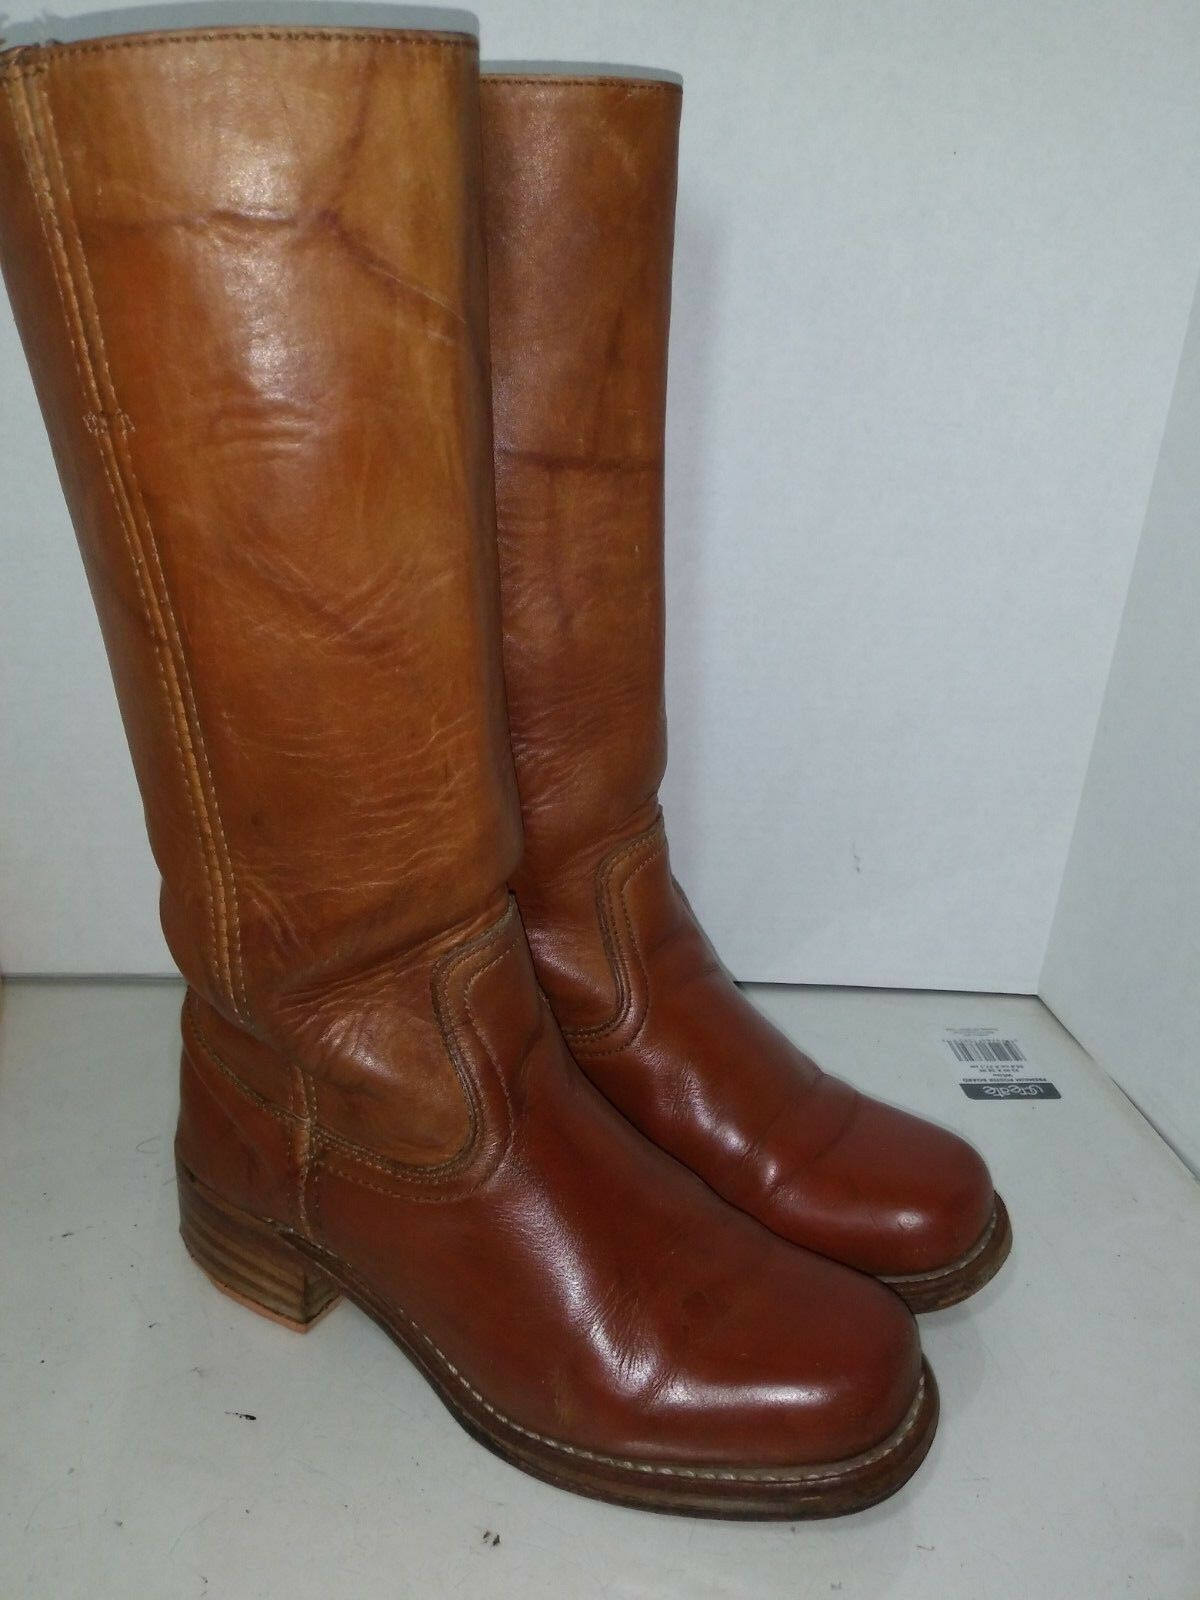 Frye Womens Campus 14L Leather Boots Womens Size 6.5 M